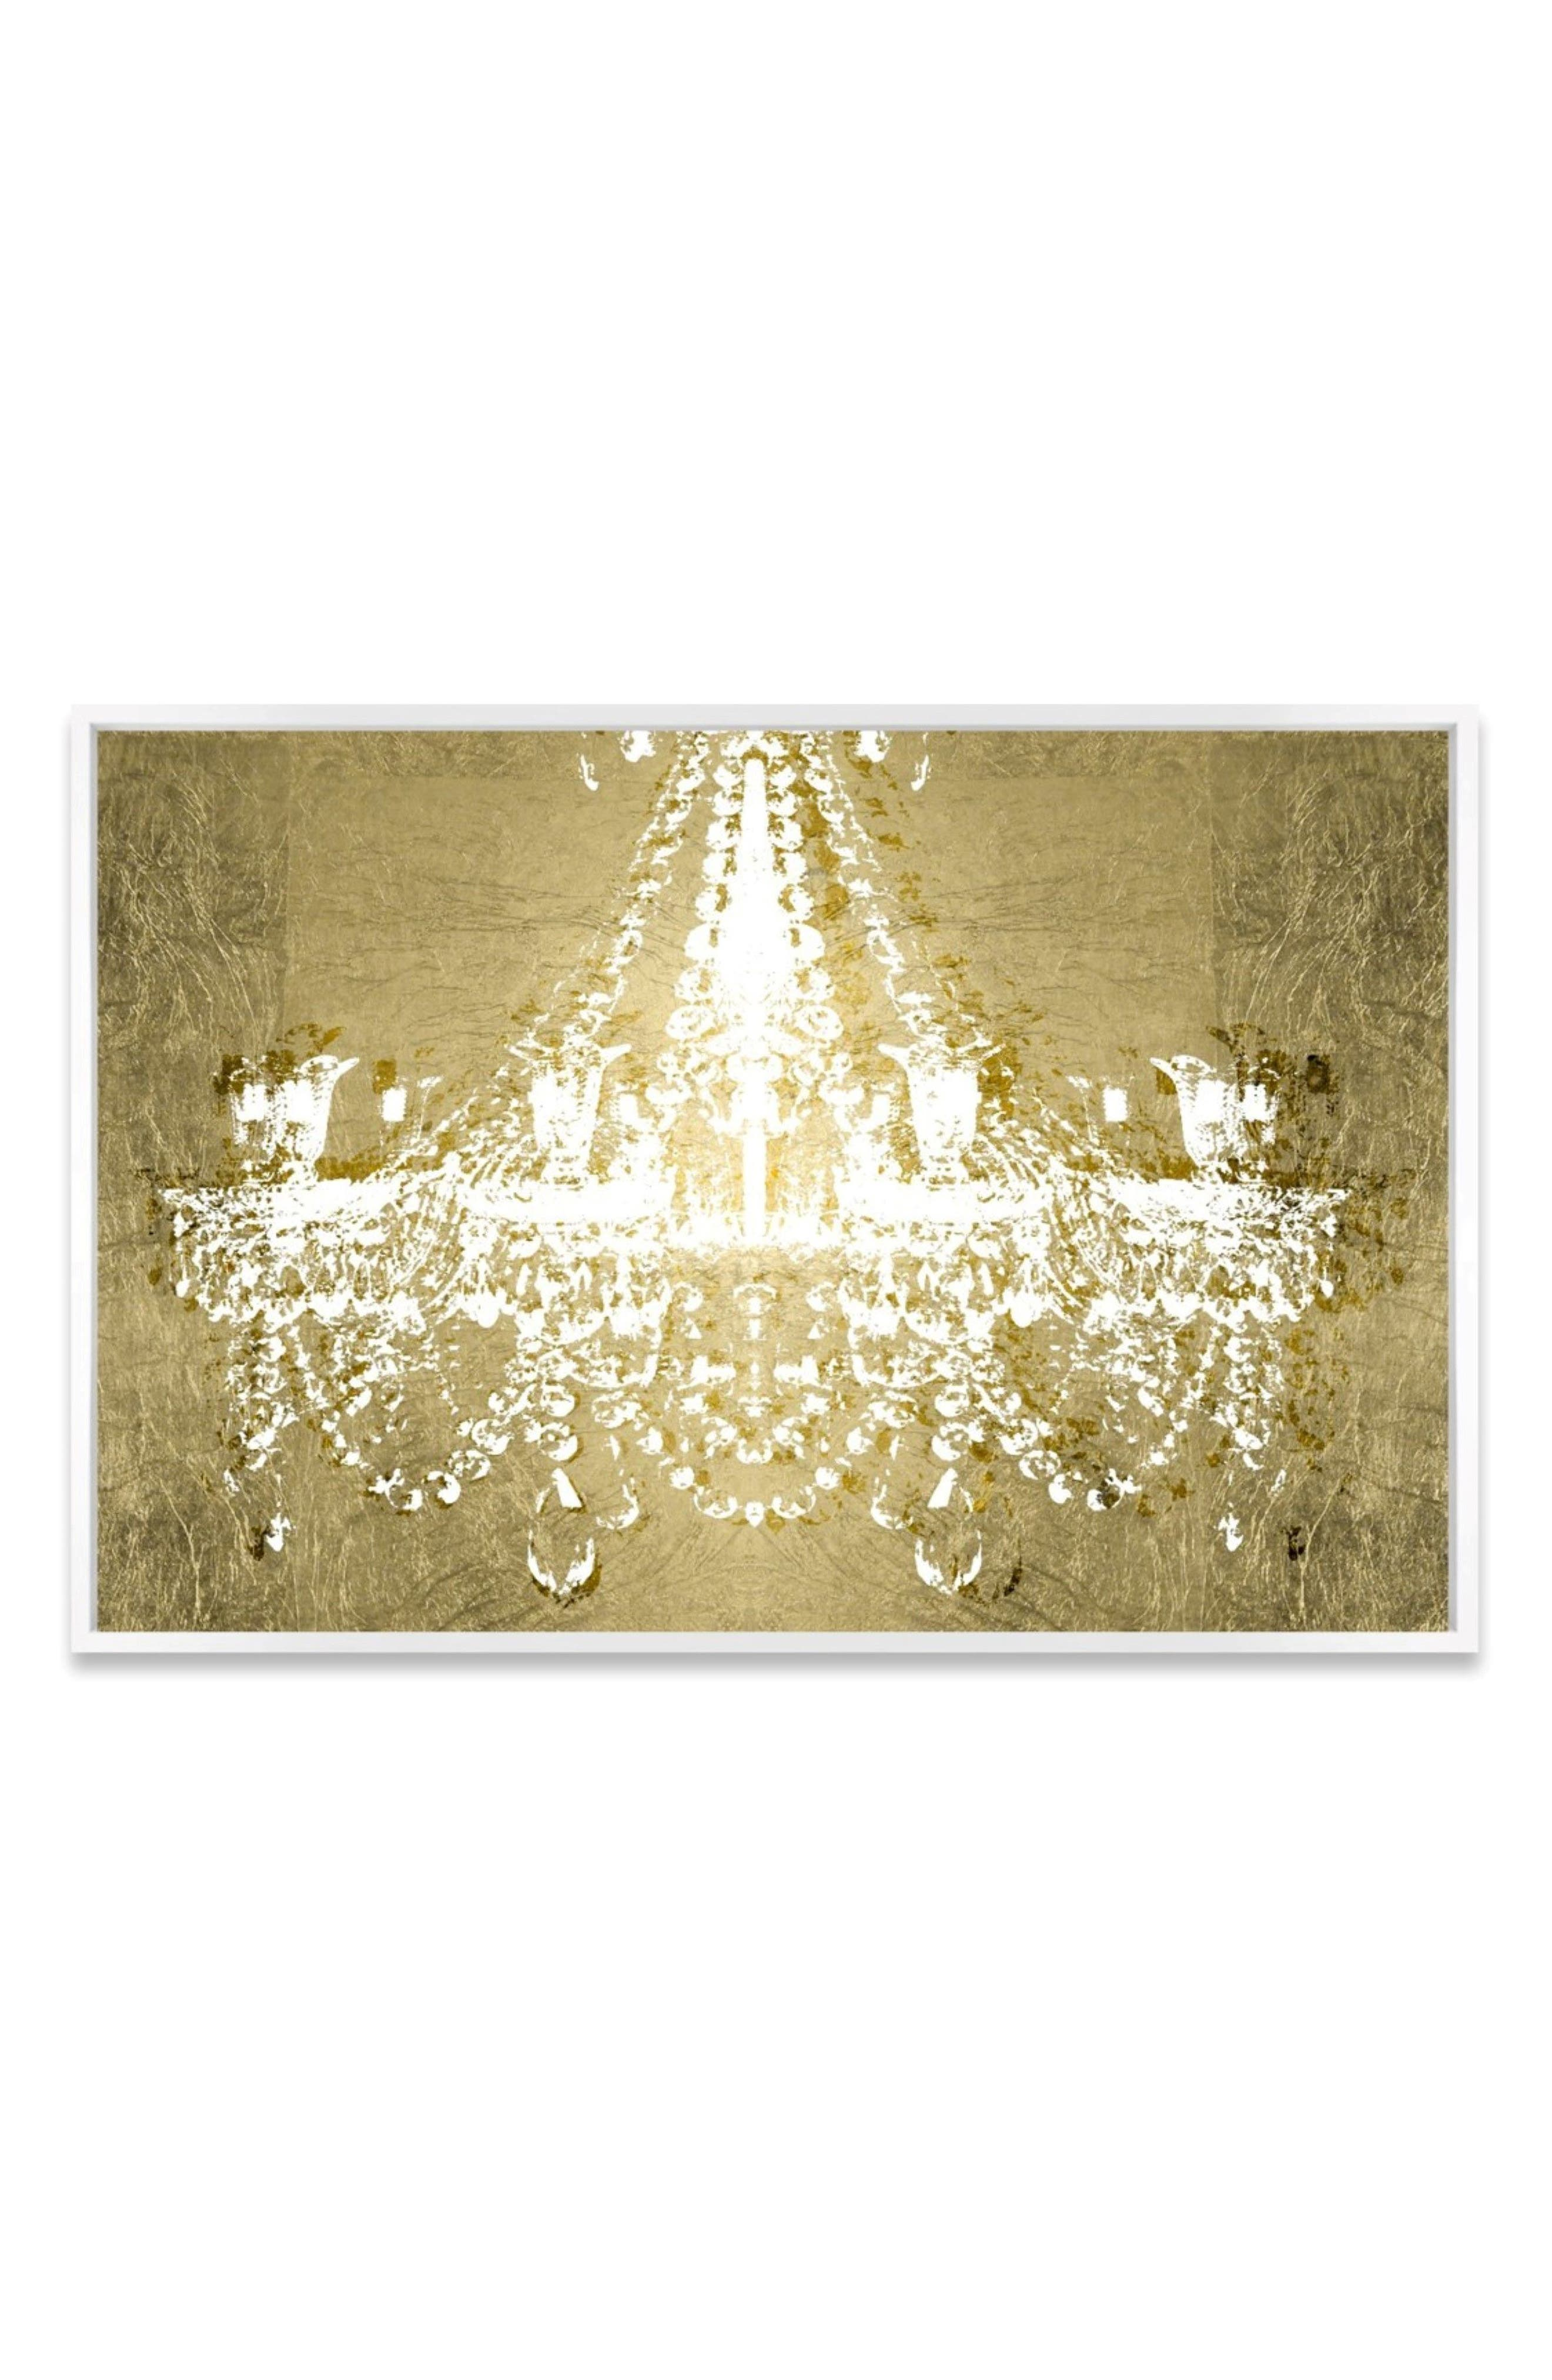 Dramatic Entrance Canvas Wall Art,                             Main thumbnail 1, color,                             Metallic Gold